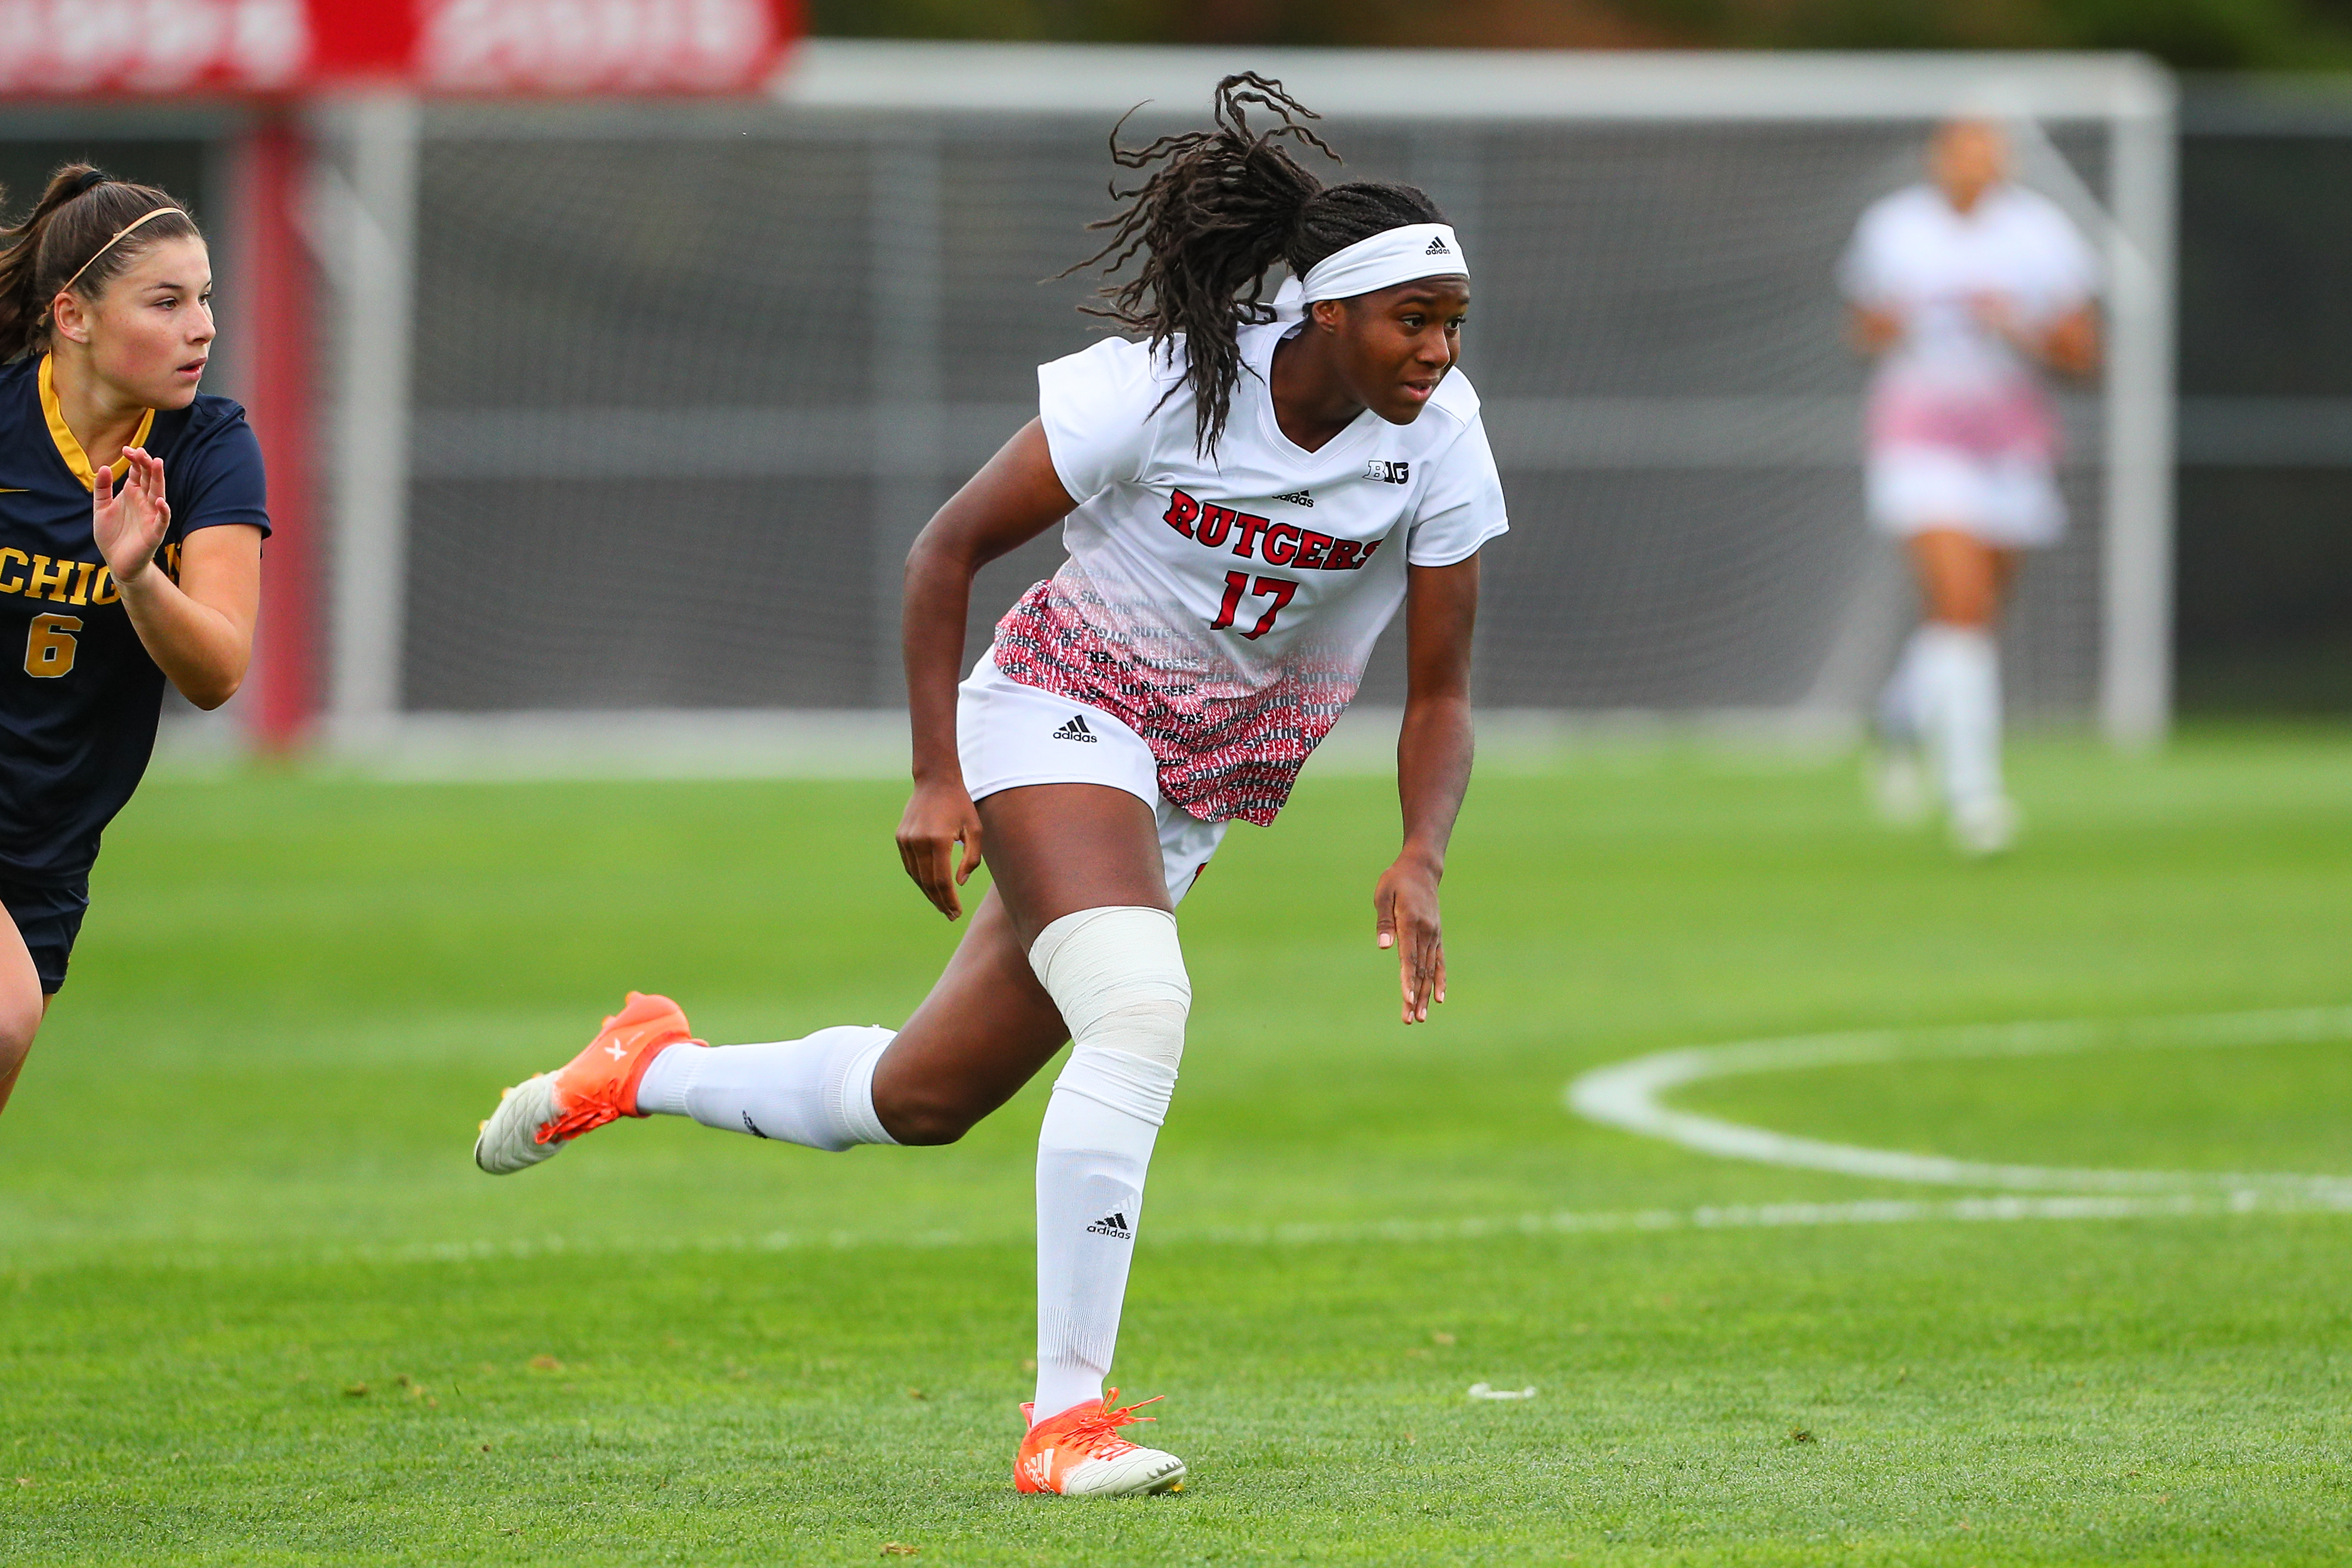 COLLEGE WOMENS SOCCER: OCT 25 Michigan at Rutgers